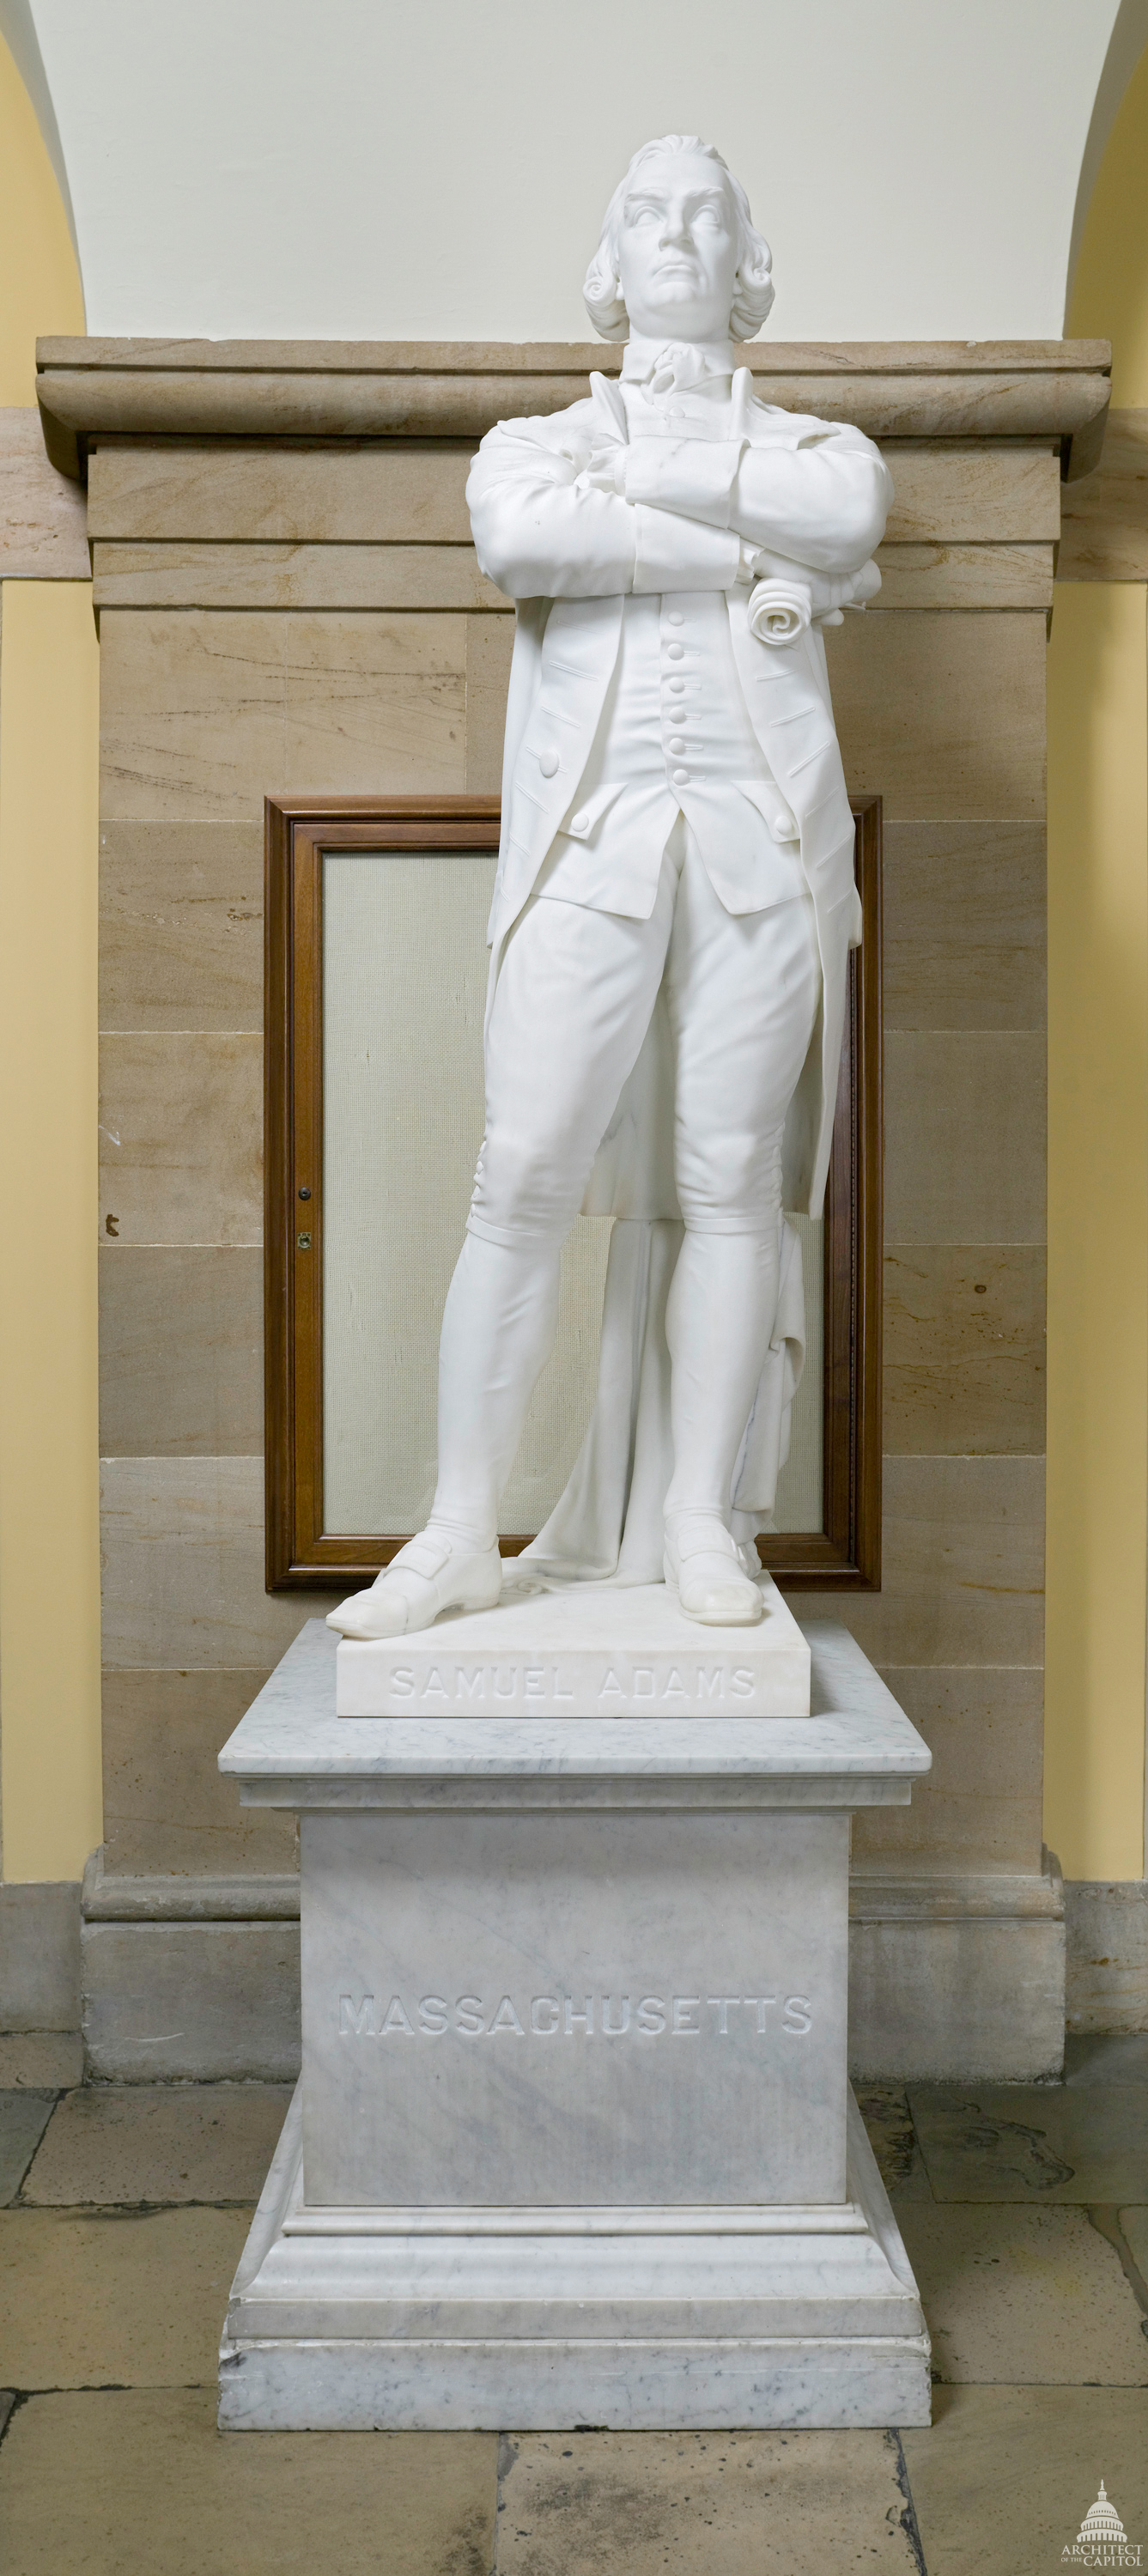 Statue of Samuel Adams, representing Massachusetts in the U.S. Capitol's National Statuary Hall Collection.